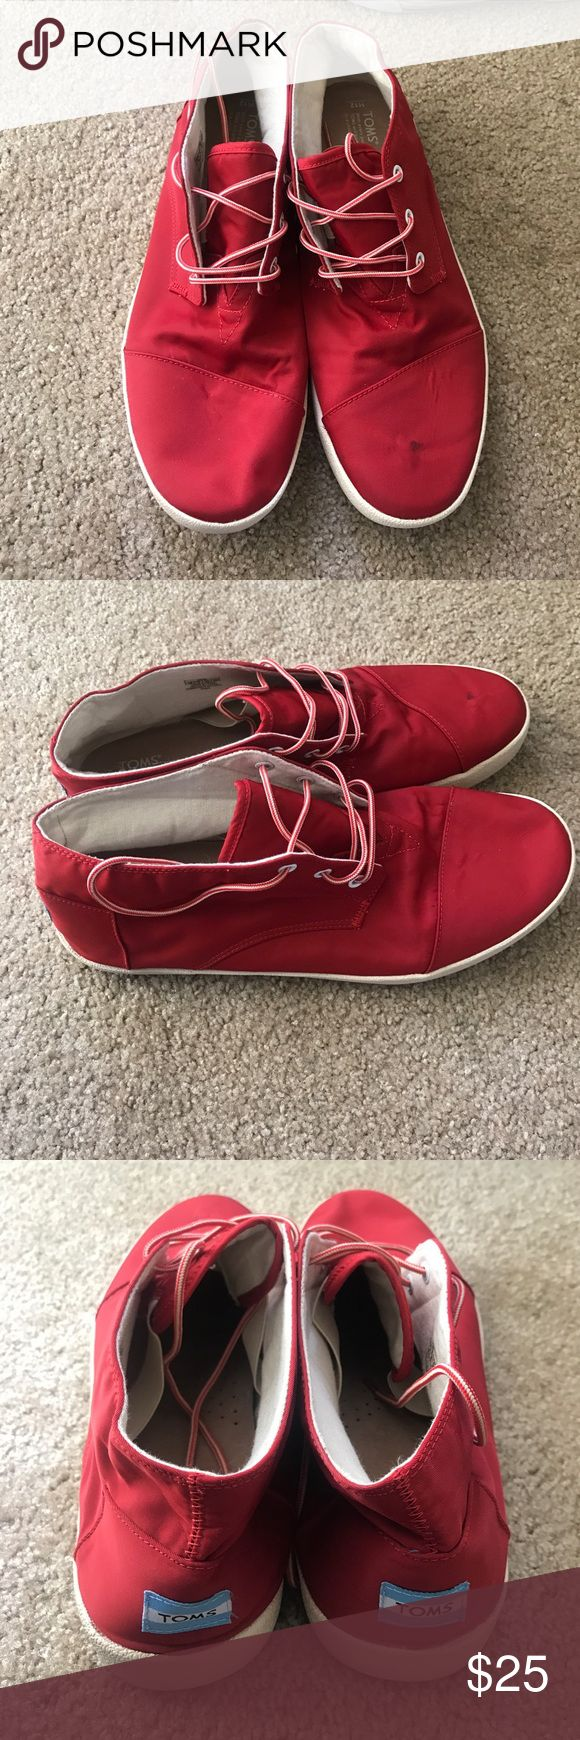 MENS TOMS Red HIgh Top Slip Ons Worn a few times. TOMS Shoes